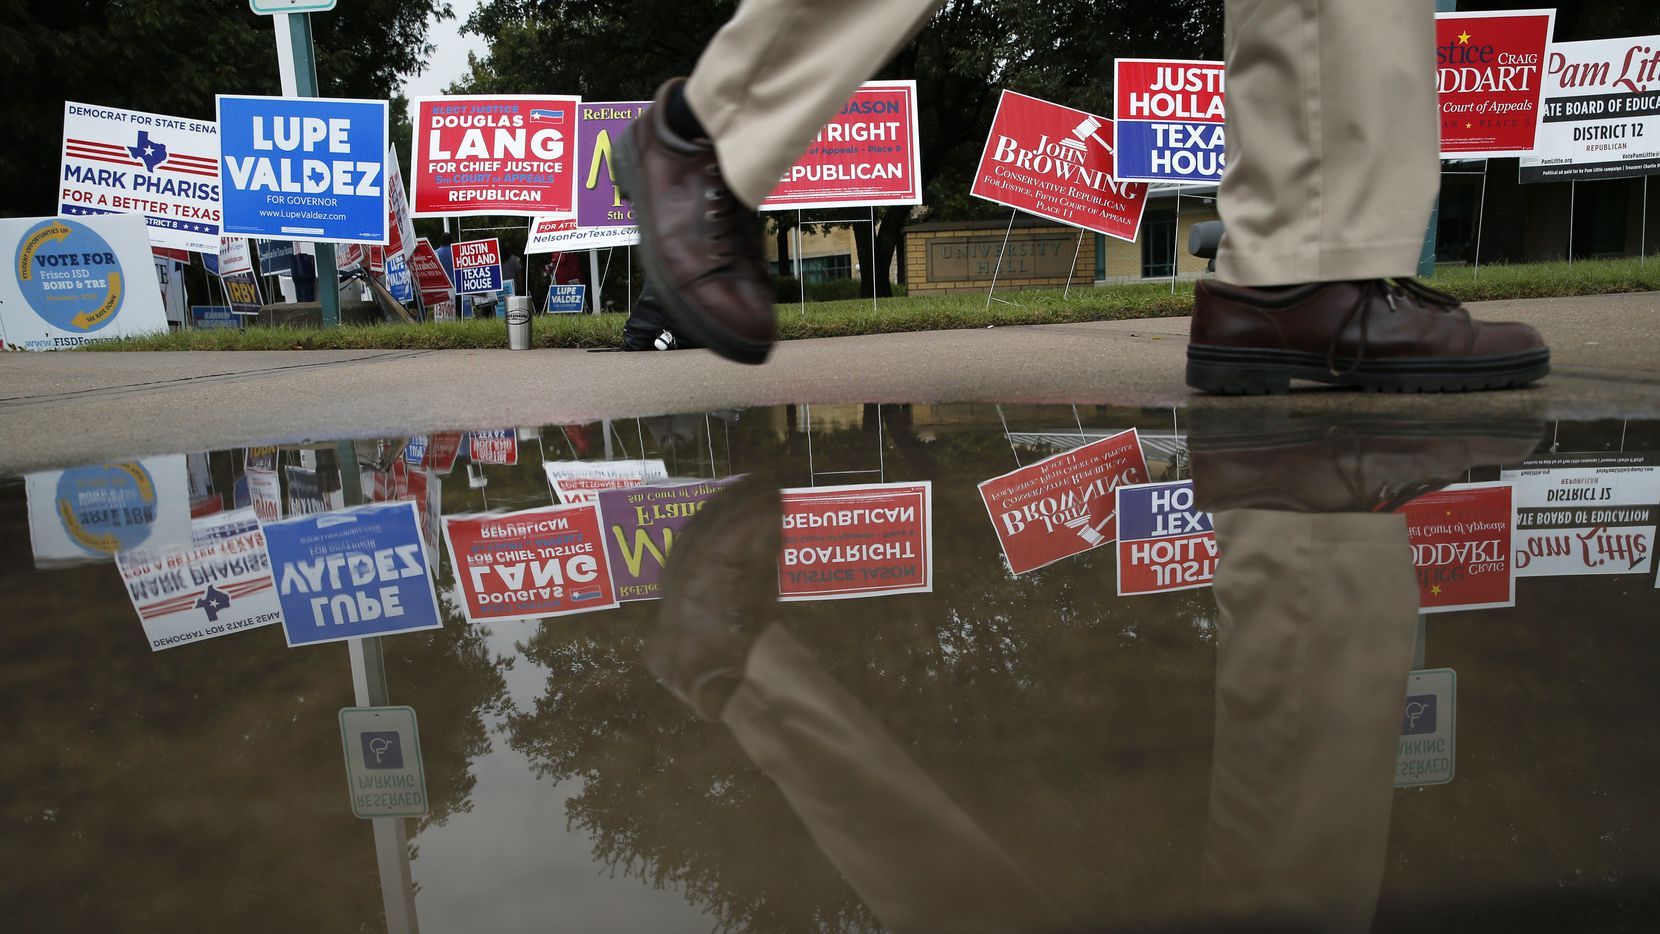 A voter made his way back to his car after voting at a polling station at Collin College Preston Ridge Campus in Frisco on Oct. 25.